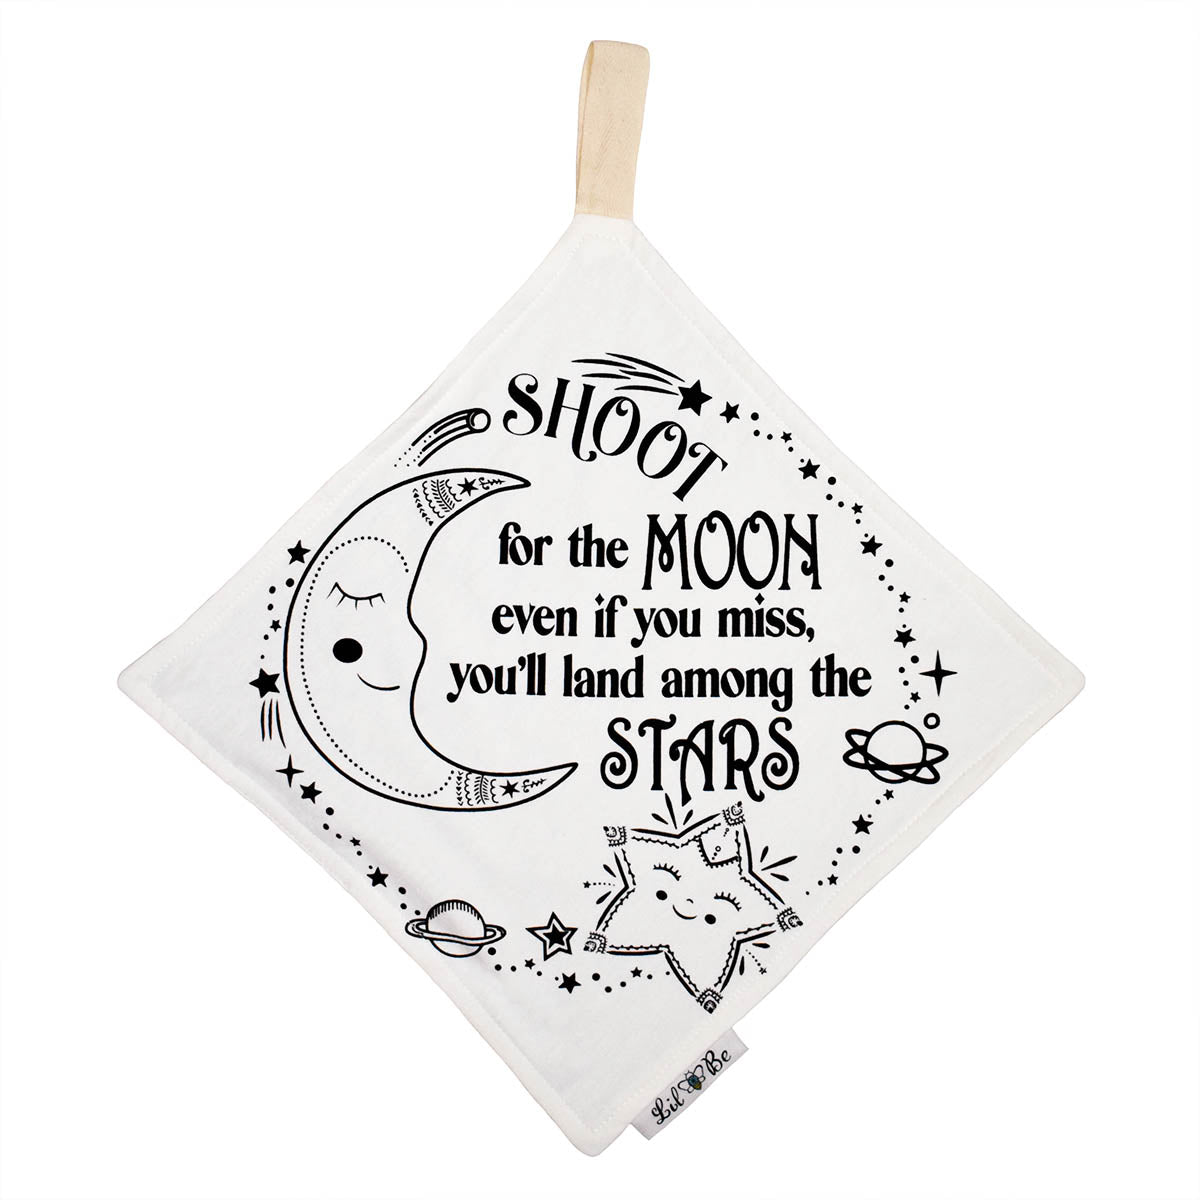 "Mini Blanket with Moon and Star Saying ""Shoot for the Moon even if you miss, you'll land among the Stars"" Graphic with tag to attached to teether"